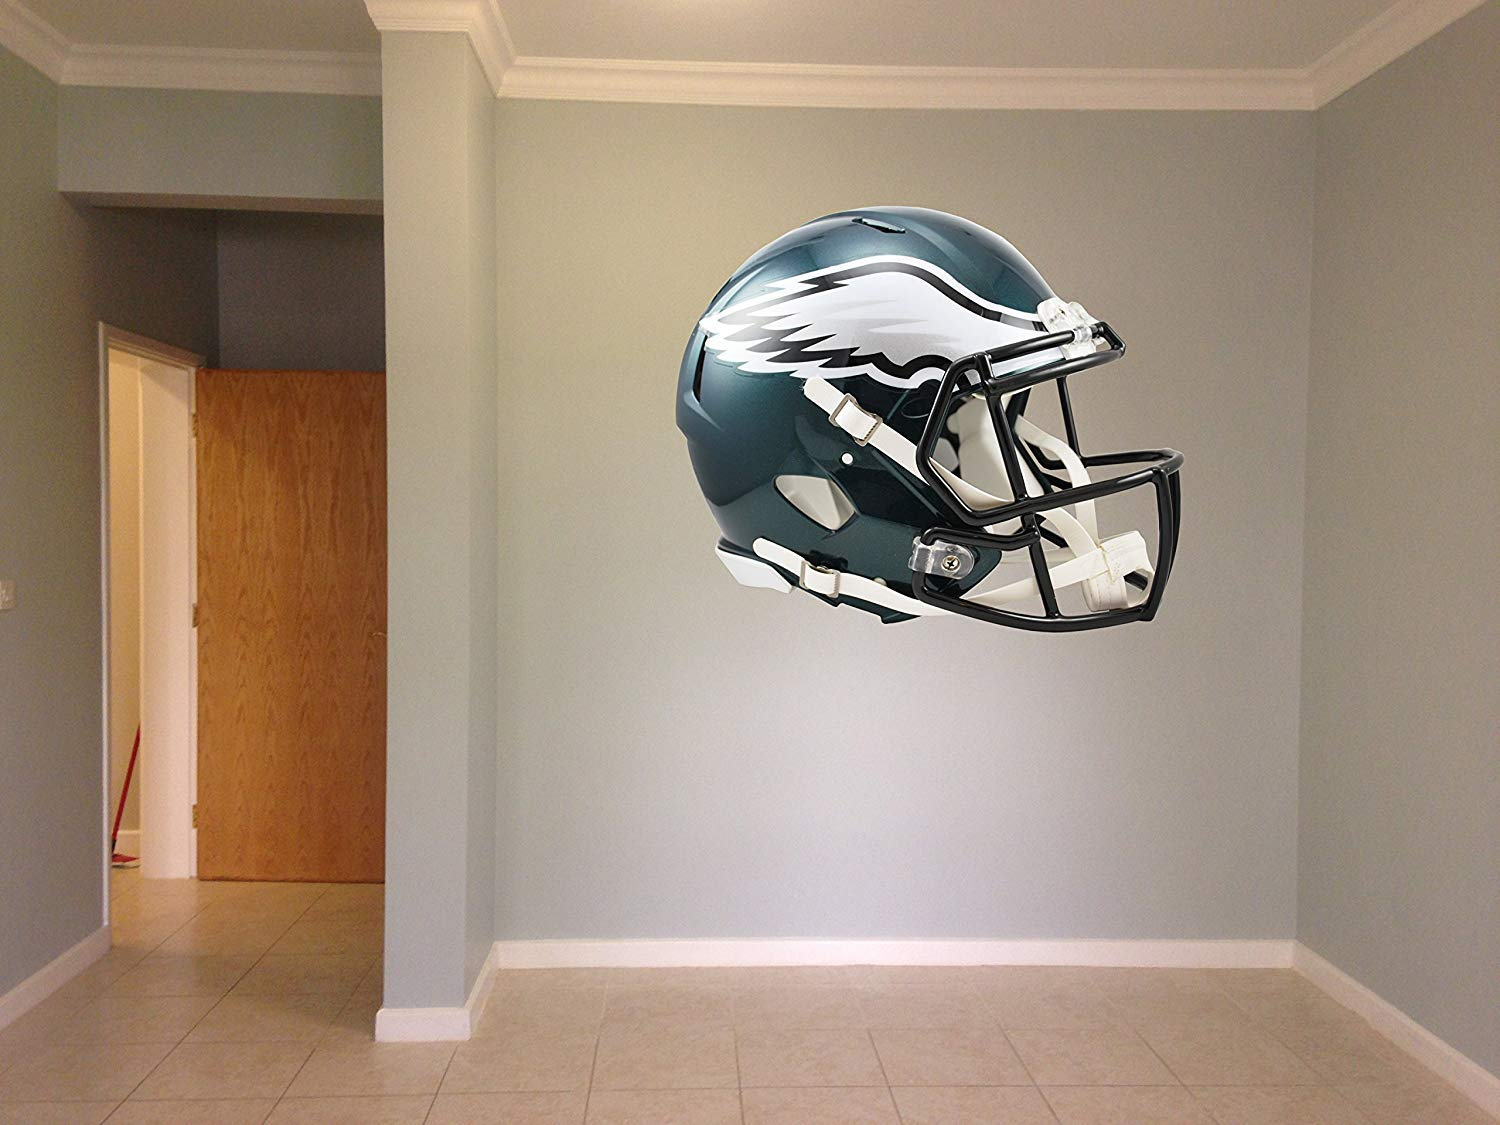 Eagles NFL Decal, Philadelphia Wall Decal, Eagles Stickers, Philadelphia Eagles Large Decal, Eagles Decal, Eagles Sticker, Eagles Wall Decal, Philadelphia Eagles Decal, Eagles Decor pf73 (40'' x 48'') by PillowFigtArt